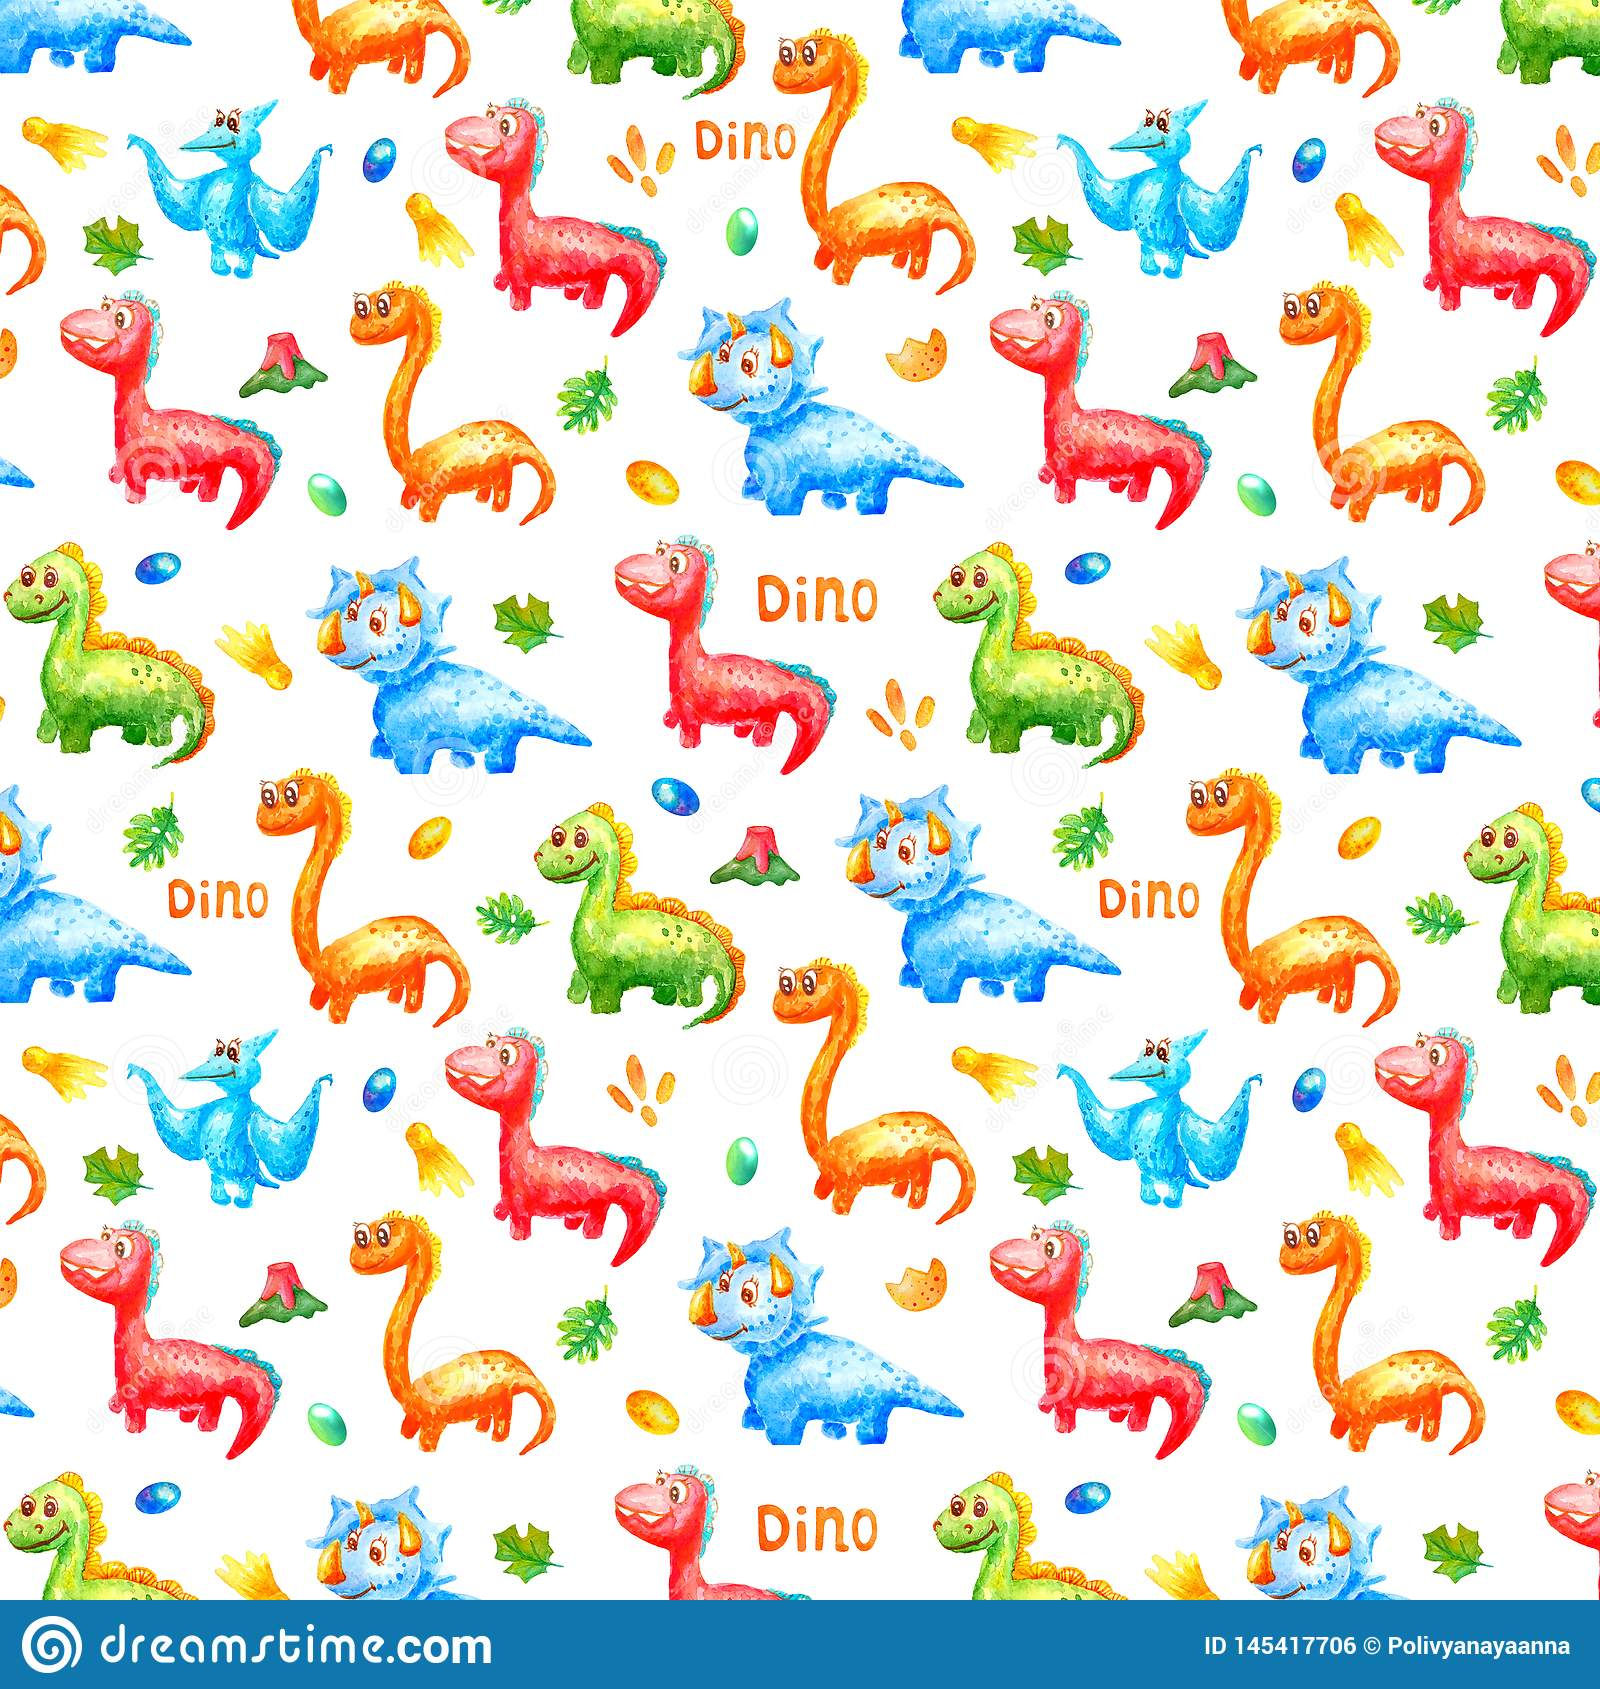 Pattern watercolor colorful dinosaurs with eggs, trace, volcano ana leafs on white background. Wallpaper or print or